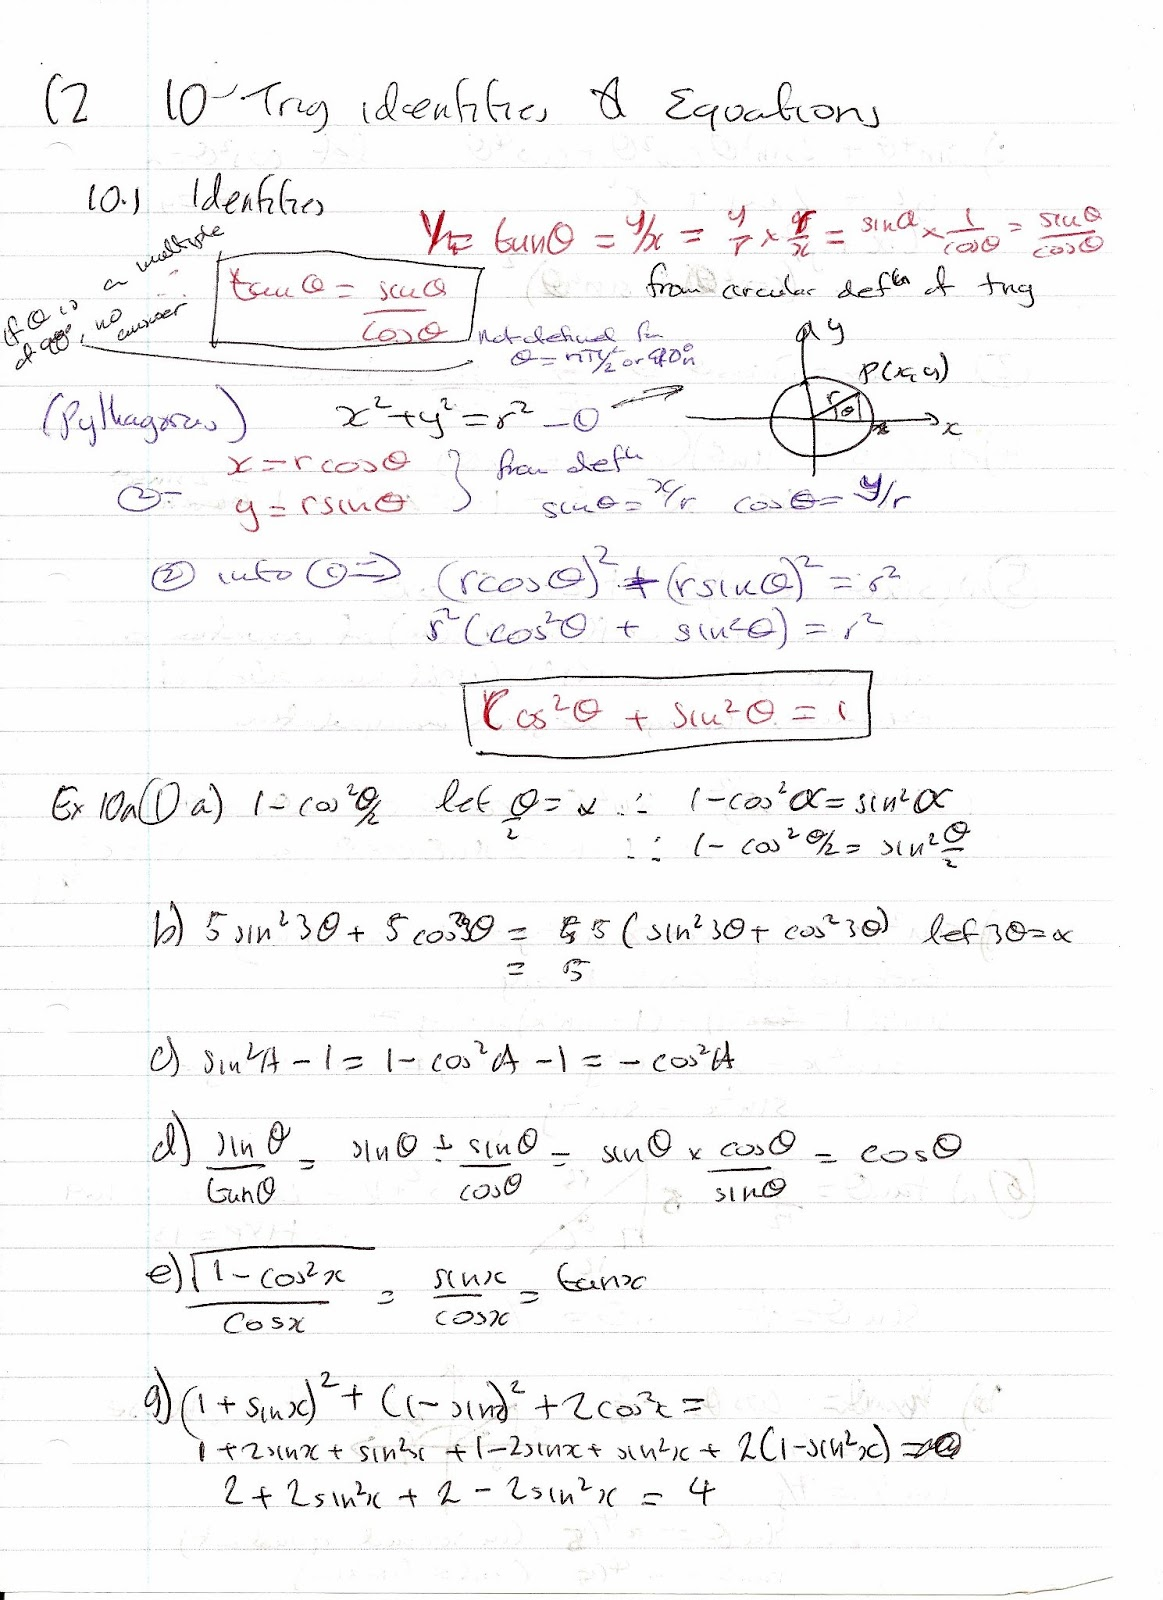 A Level Maths Notes Edexcel C2 10 Trigonometric Identities And Equations